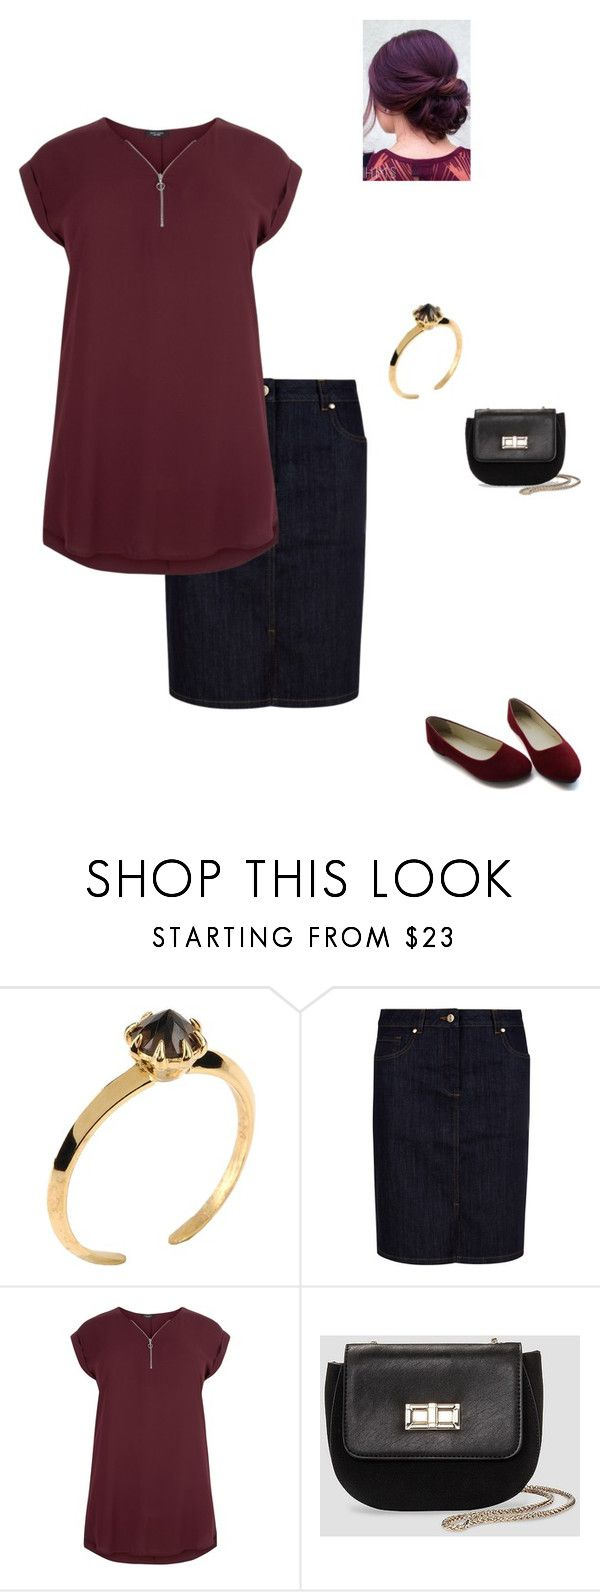 """burgundy and black"" by acousticflute ❤ liked on Polyvore featuring Katie Rowland, Hobbs, New Look and Who What Wear"